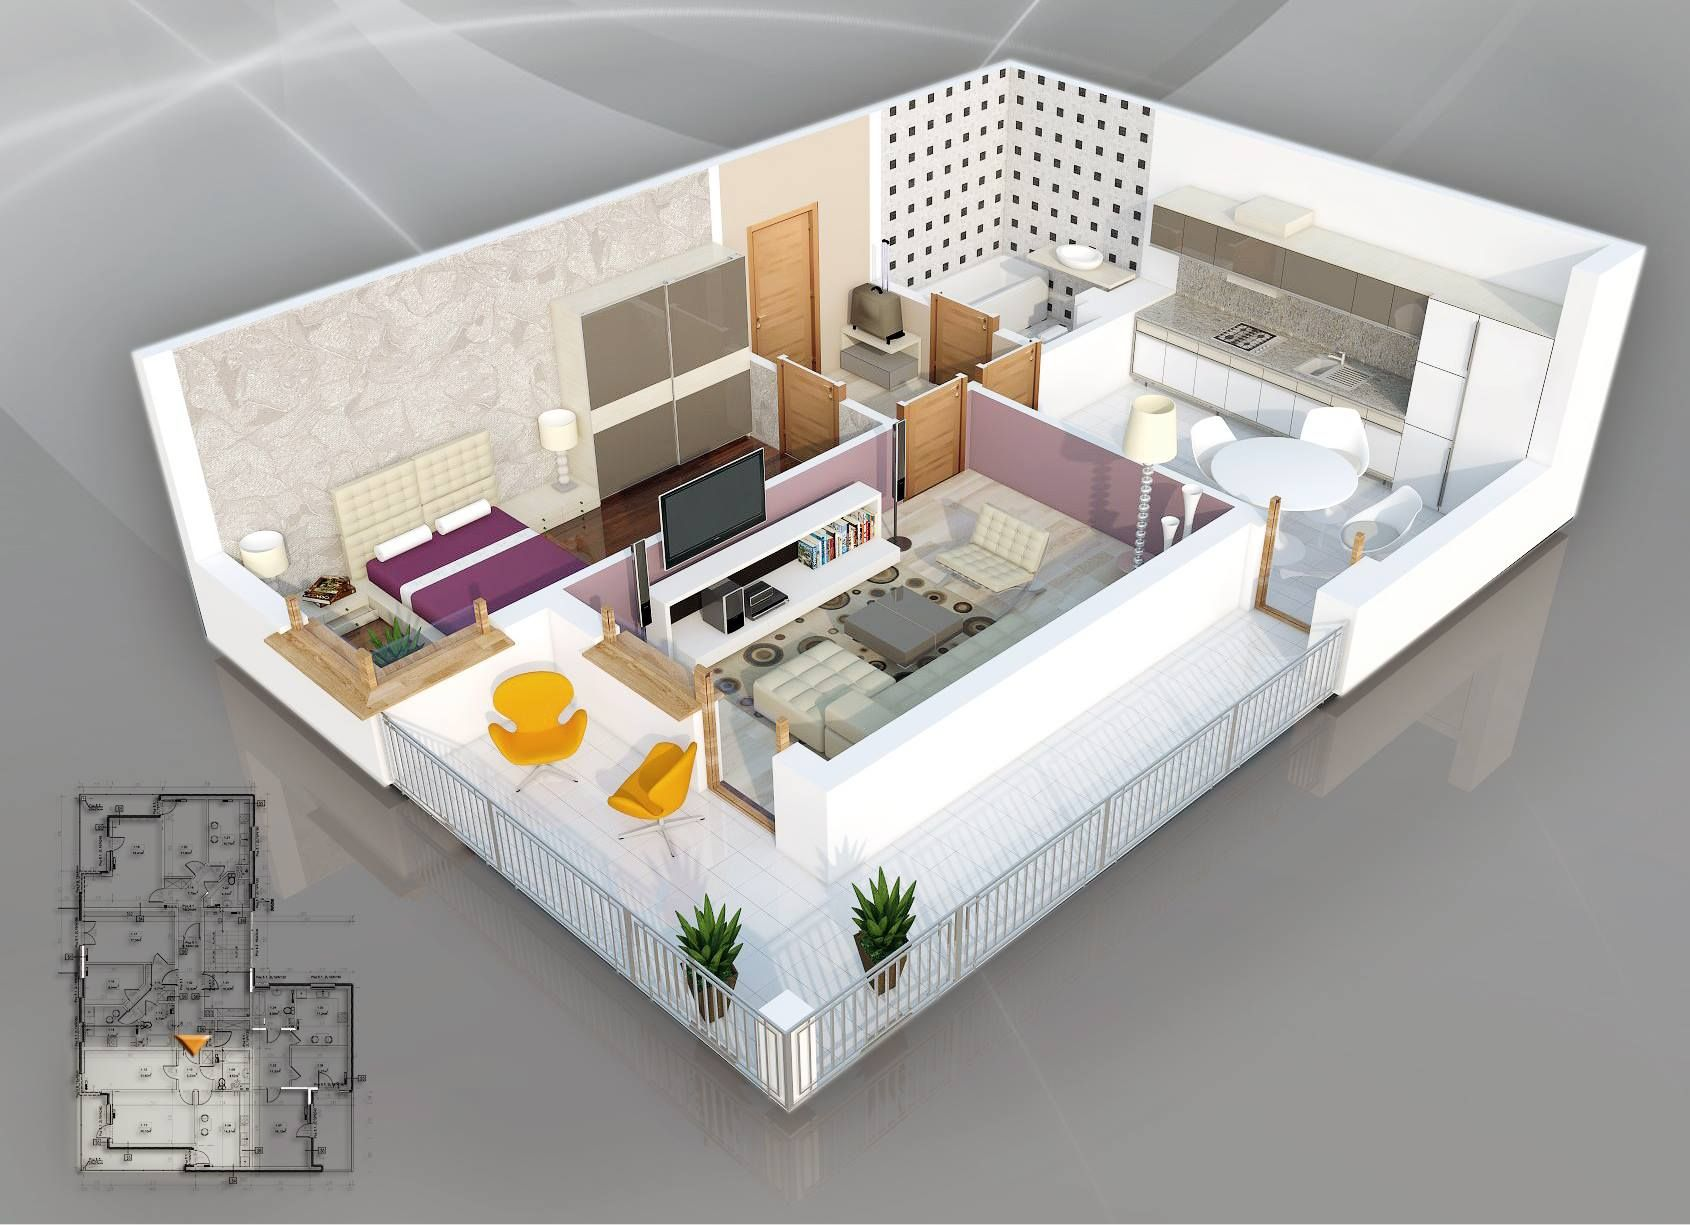 1 Bedroom Apartment House Plans One Bedroom House Plans One Bedroom Apartment Apartment Plans